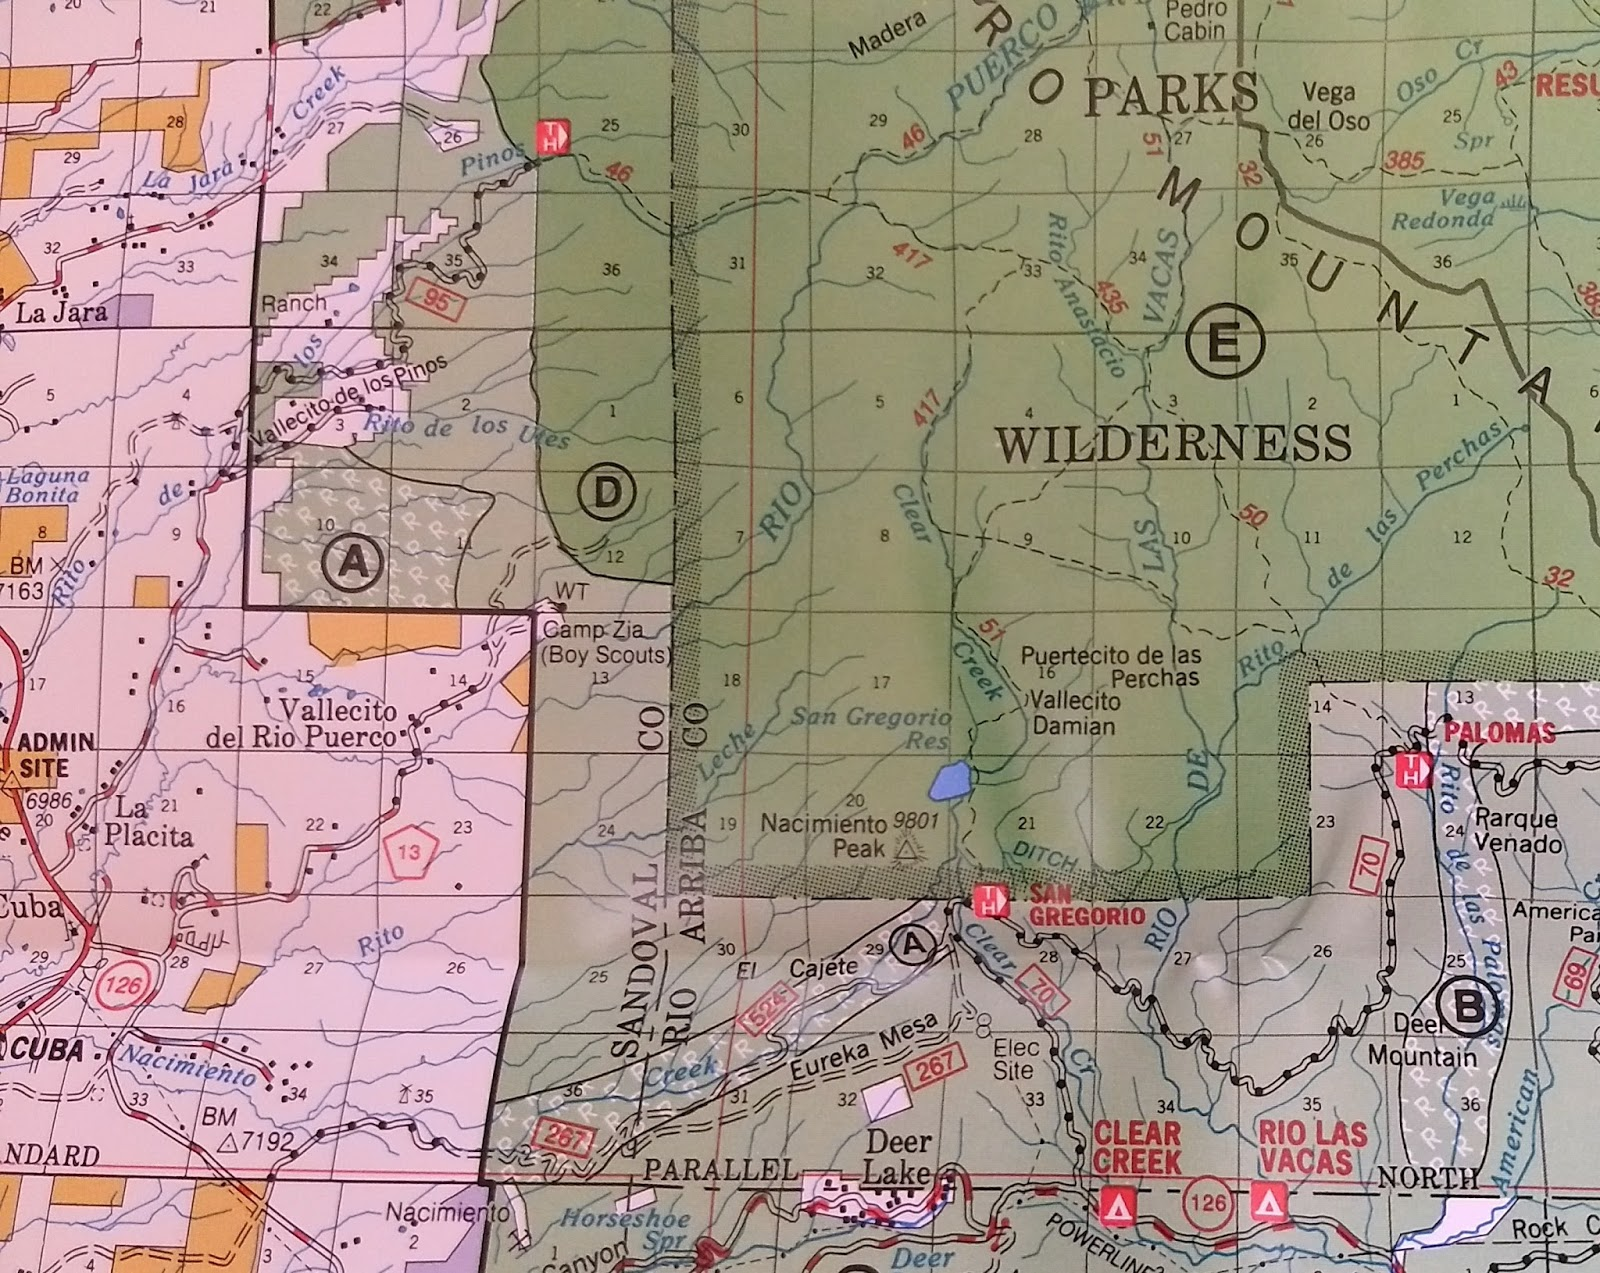 excerpt from us forest service map